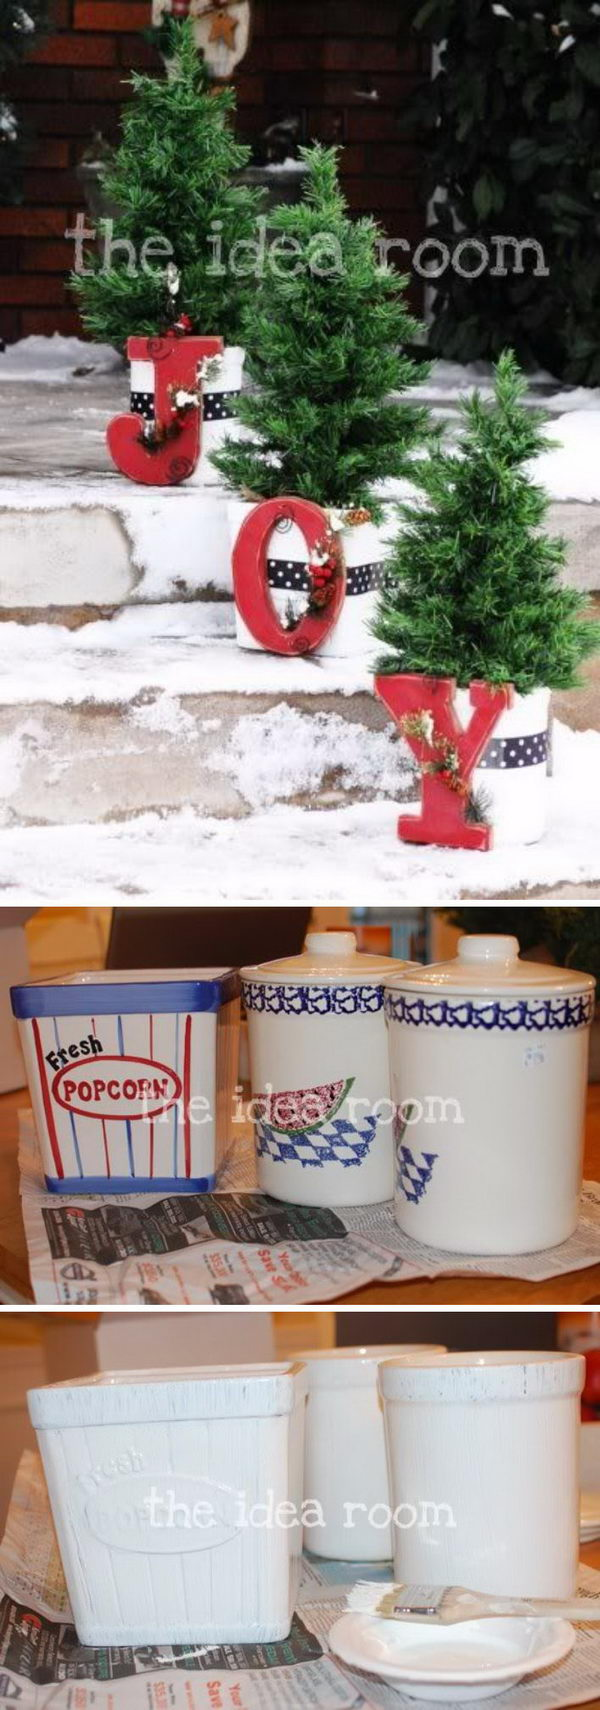 Front Porch Decor Planters with Little Trees and Bright Red 'JOY' Letters .